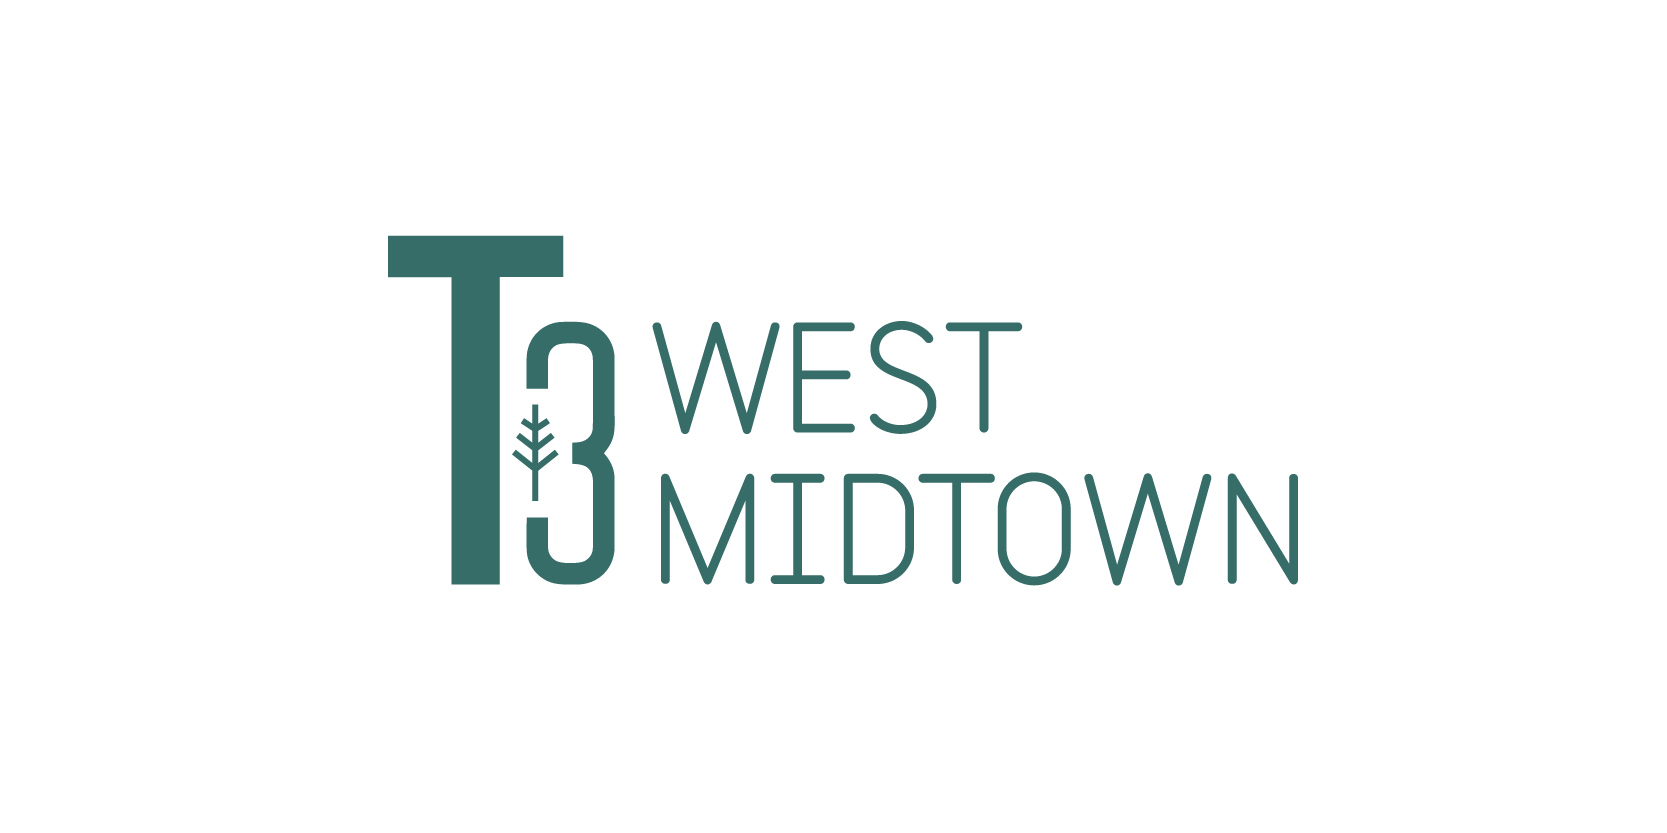 dcwdesign_T3-West-Midtown-Atlanta.jpg